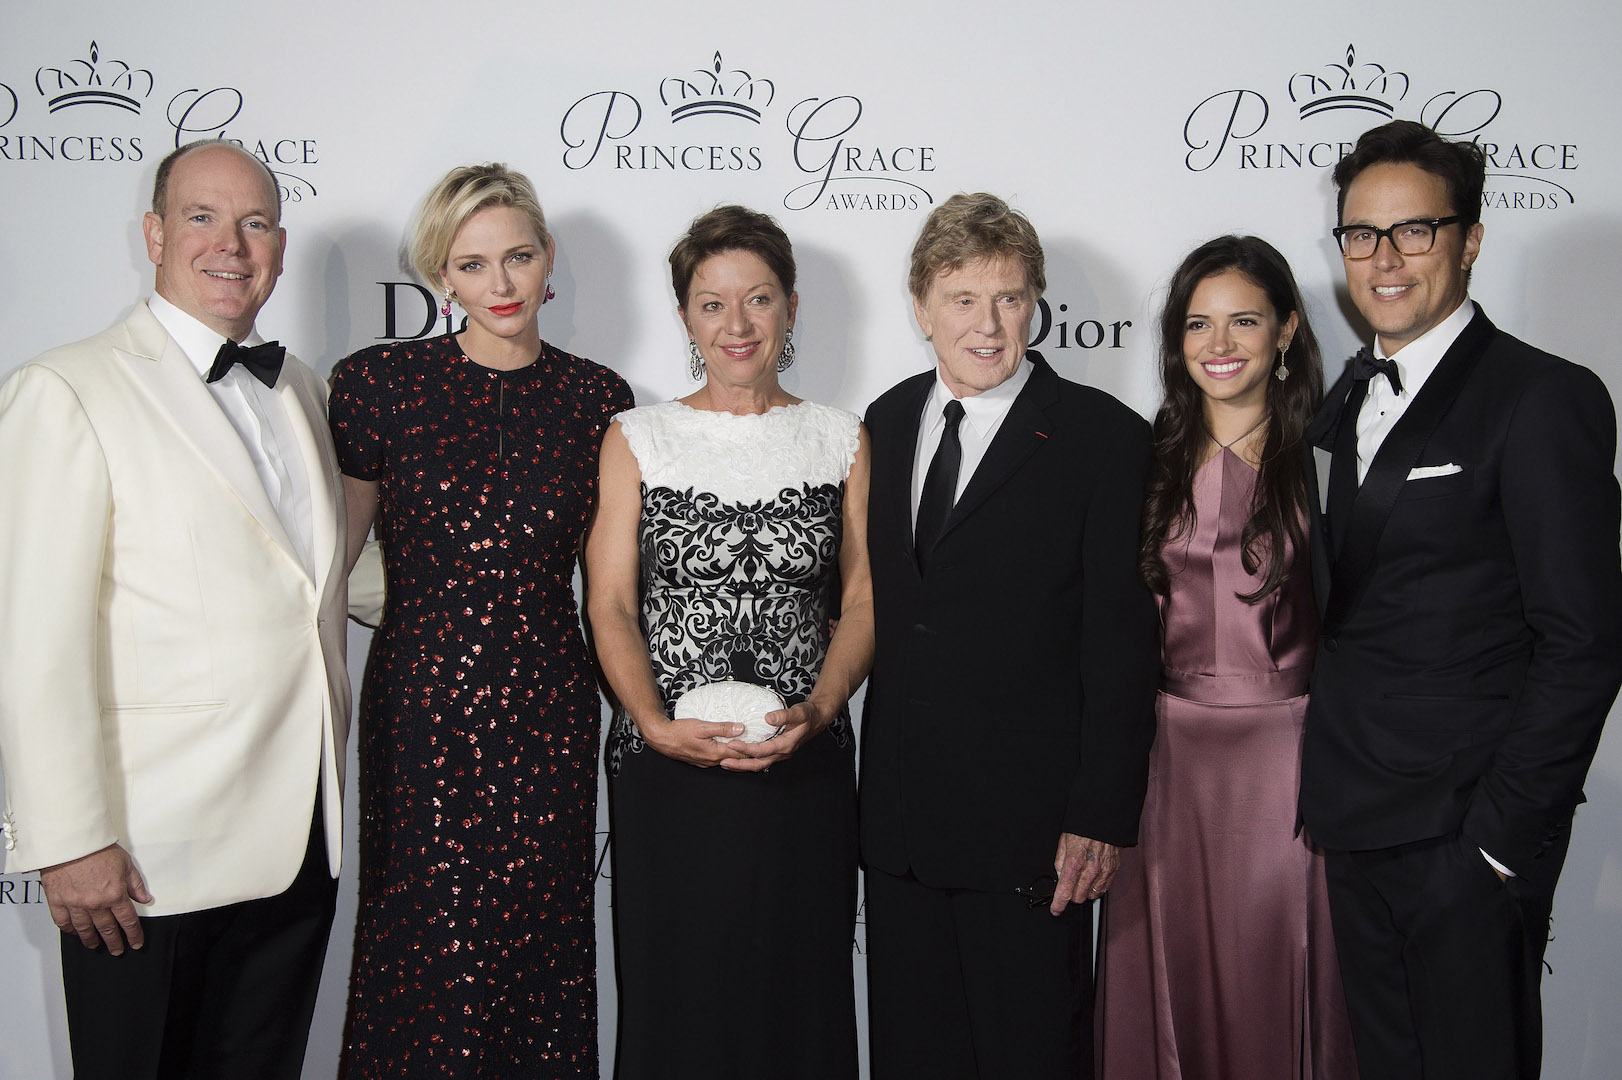 MONTE-CARLO, MONACO - SEPTEMBER 05:  (L-R) His Serene Highness Prince Albert II of Monaco, Her Serene Highness Princess Charlene of Monaco, 2015 Princess Grace Awards Gala Honorees Sibylle Szaggars Redford and Robert Redford, Daniella Perez Lopez and Cary Fukunaga (Princess Grace Statue Award Recipient) attend the 2015 Princess Grace Awards Gala With Presenting Sponsor Christian Dior Couture at Monaco Palace on September 5, 2015 in Monte-Carlo, Monaco.  (Photo by Pascal Le Segretain/Getty Images for Princess Grace Foundation-USA)